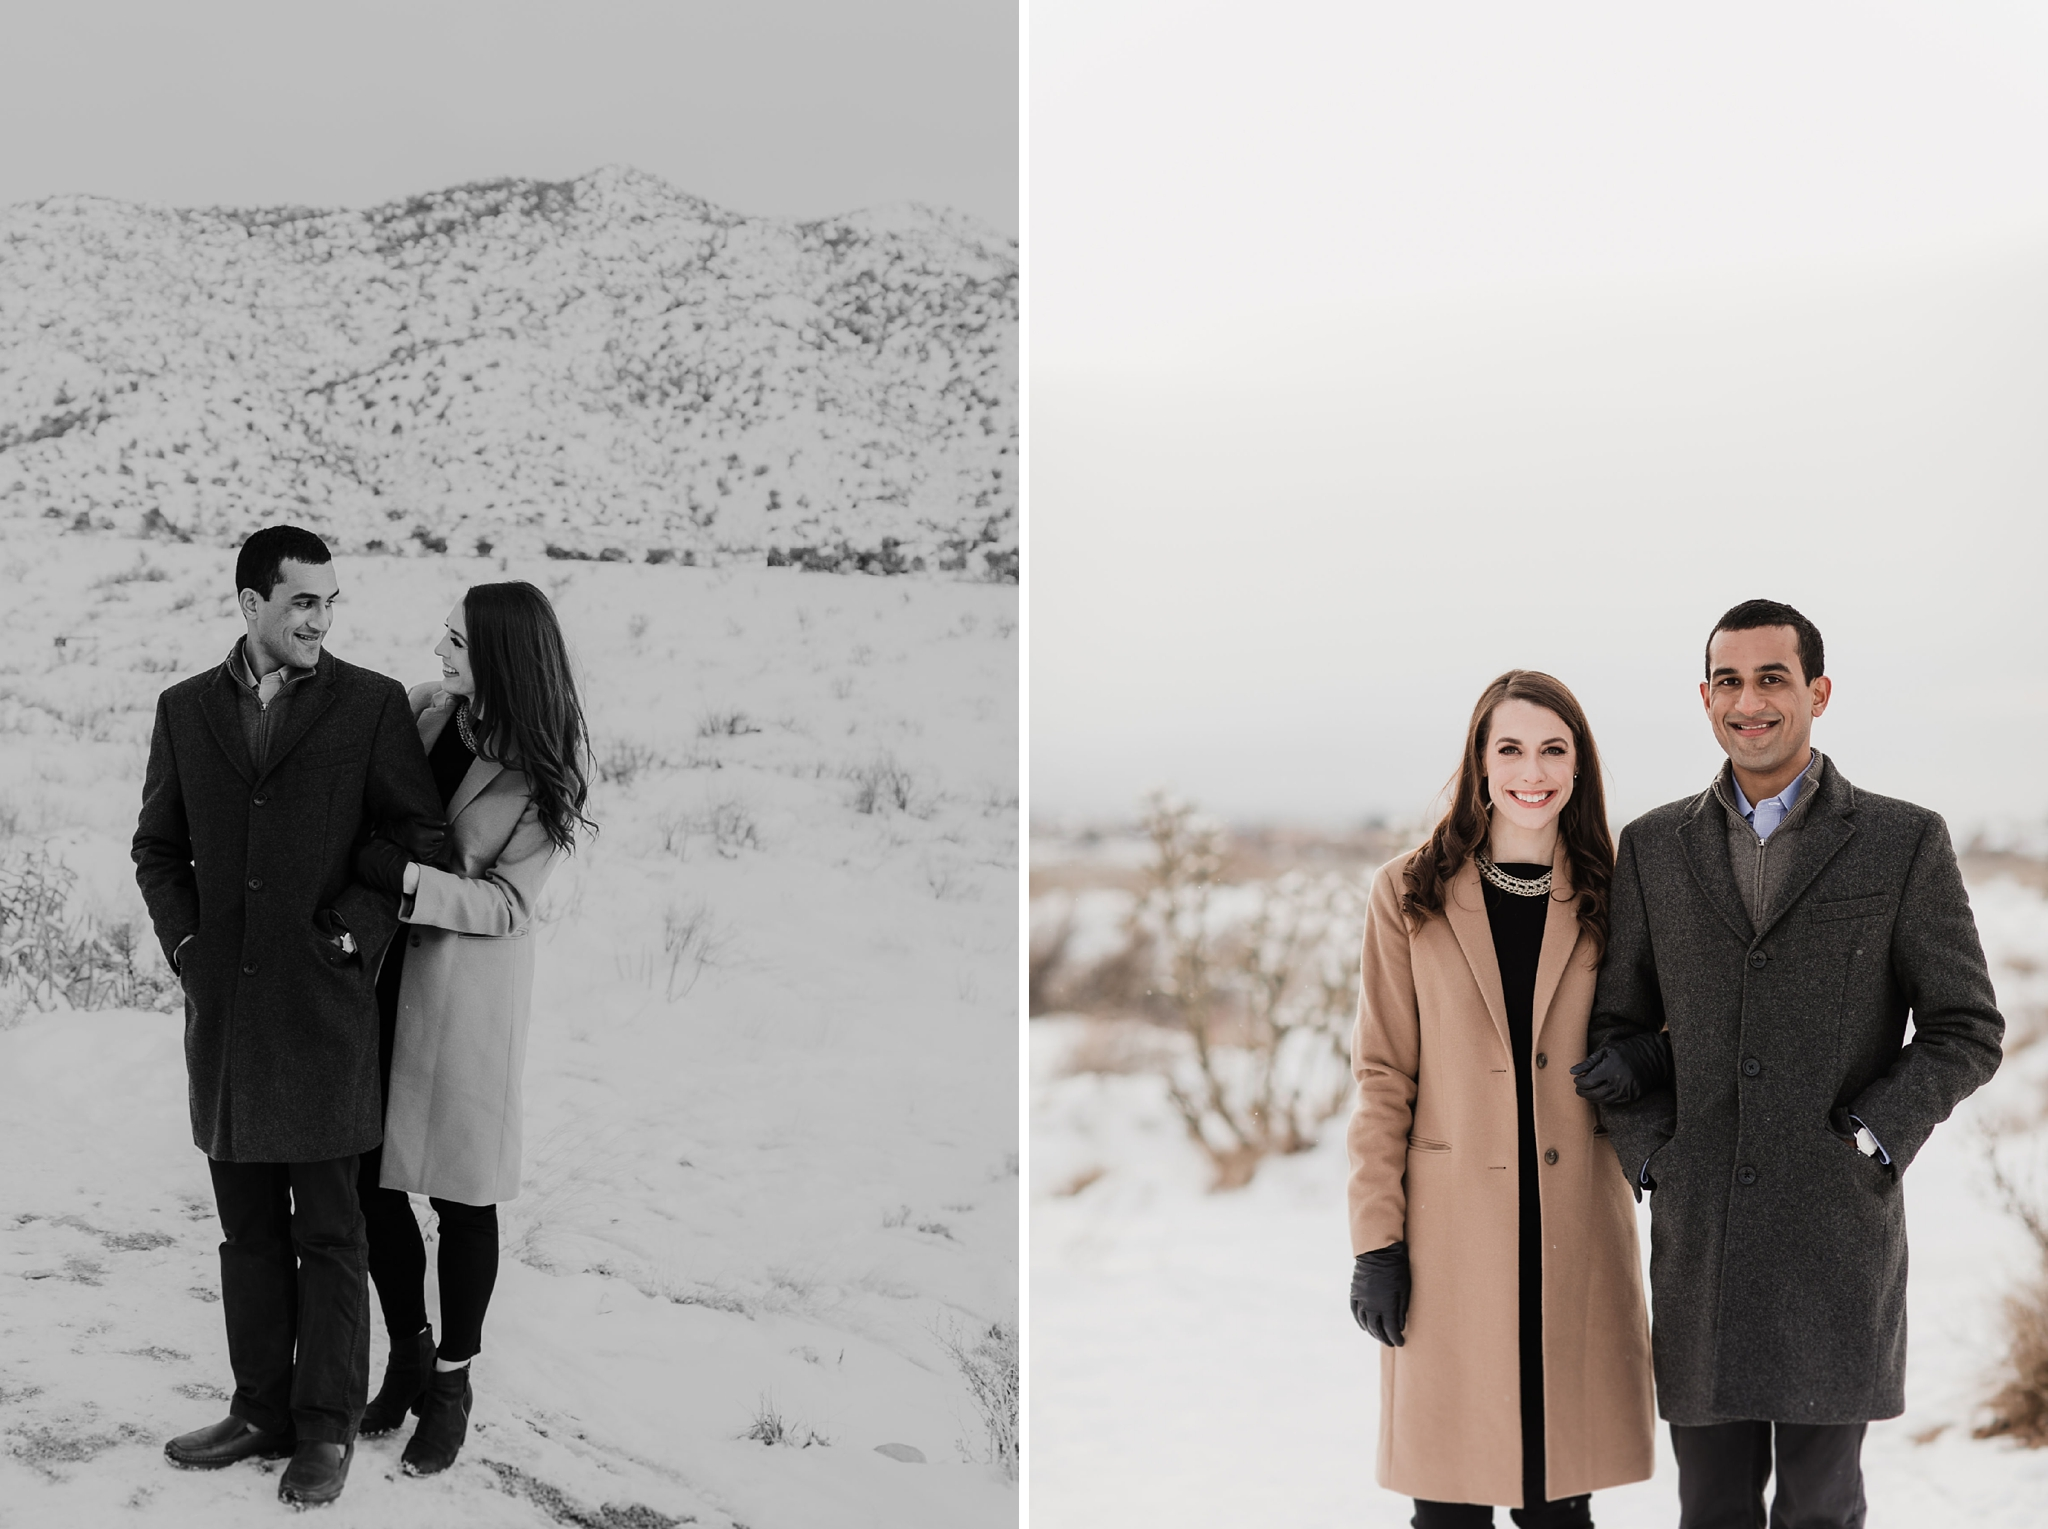 Alicia+lucia+photography+-+albuquerque+wedding+photographer+-+santa+fe+wedding+photography+-+new+mexico+wedding+photographer+-+new+mexico+wedding+-+wedding+makeup+-+makeup+artist+-+wedding+makeup+artist+-+bridal+makeup_0078.jpg